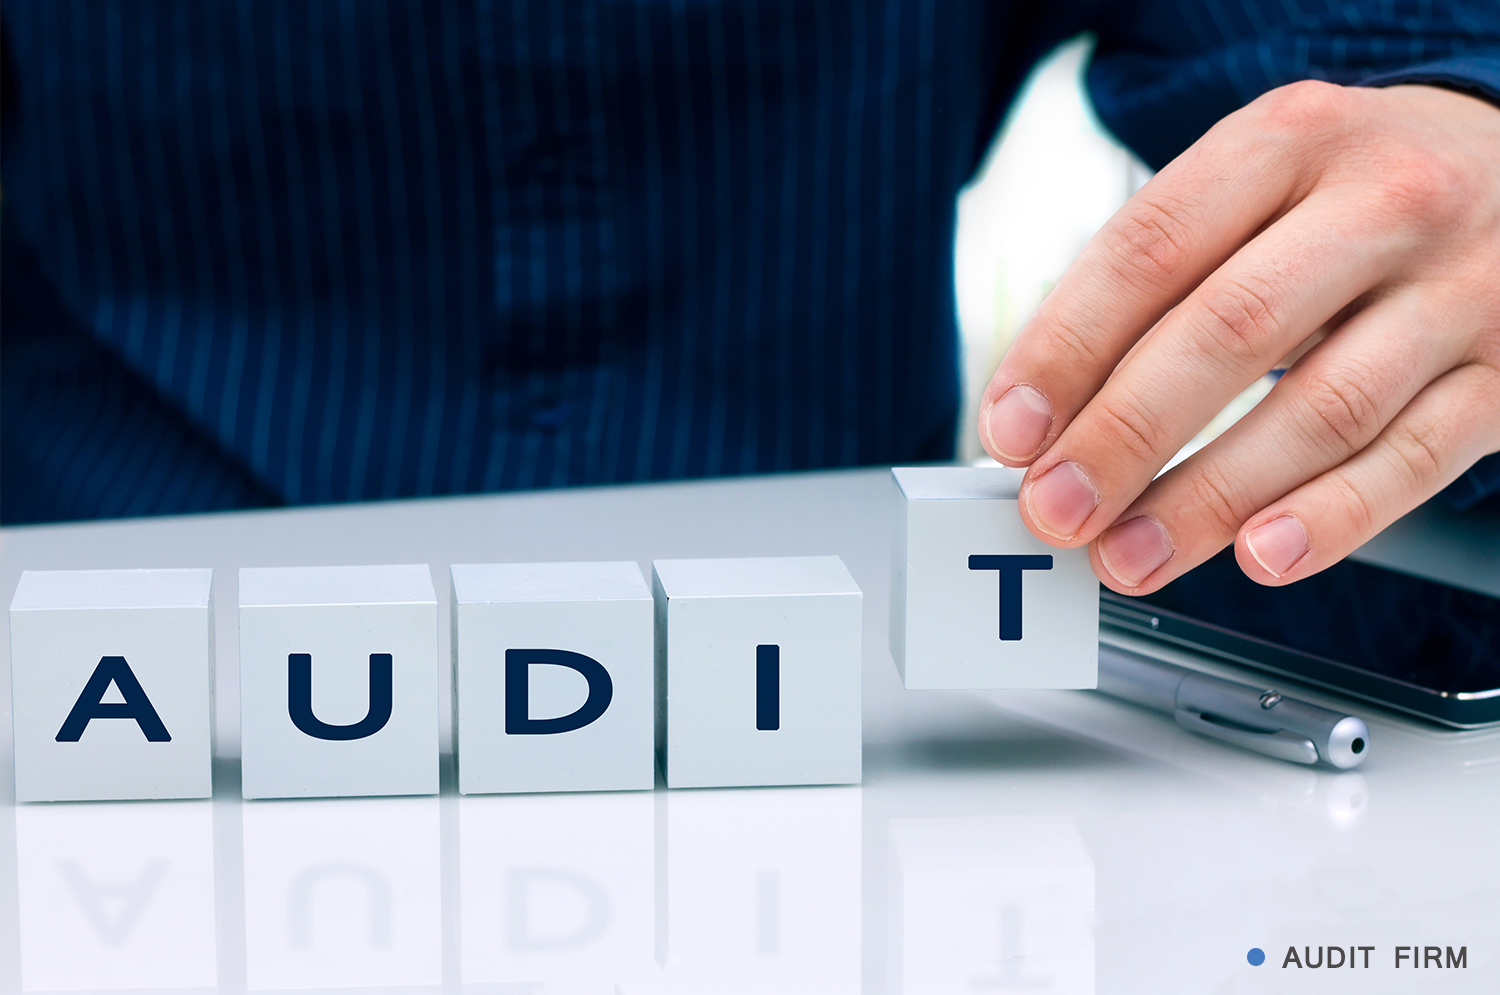 audit firm: a perfect option for auditors